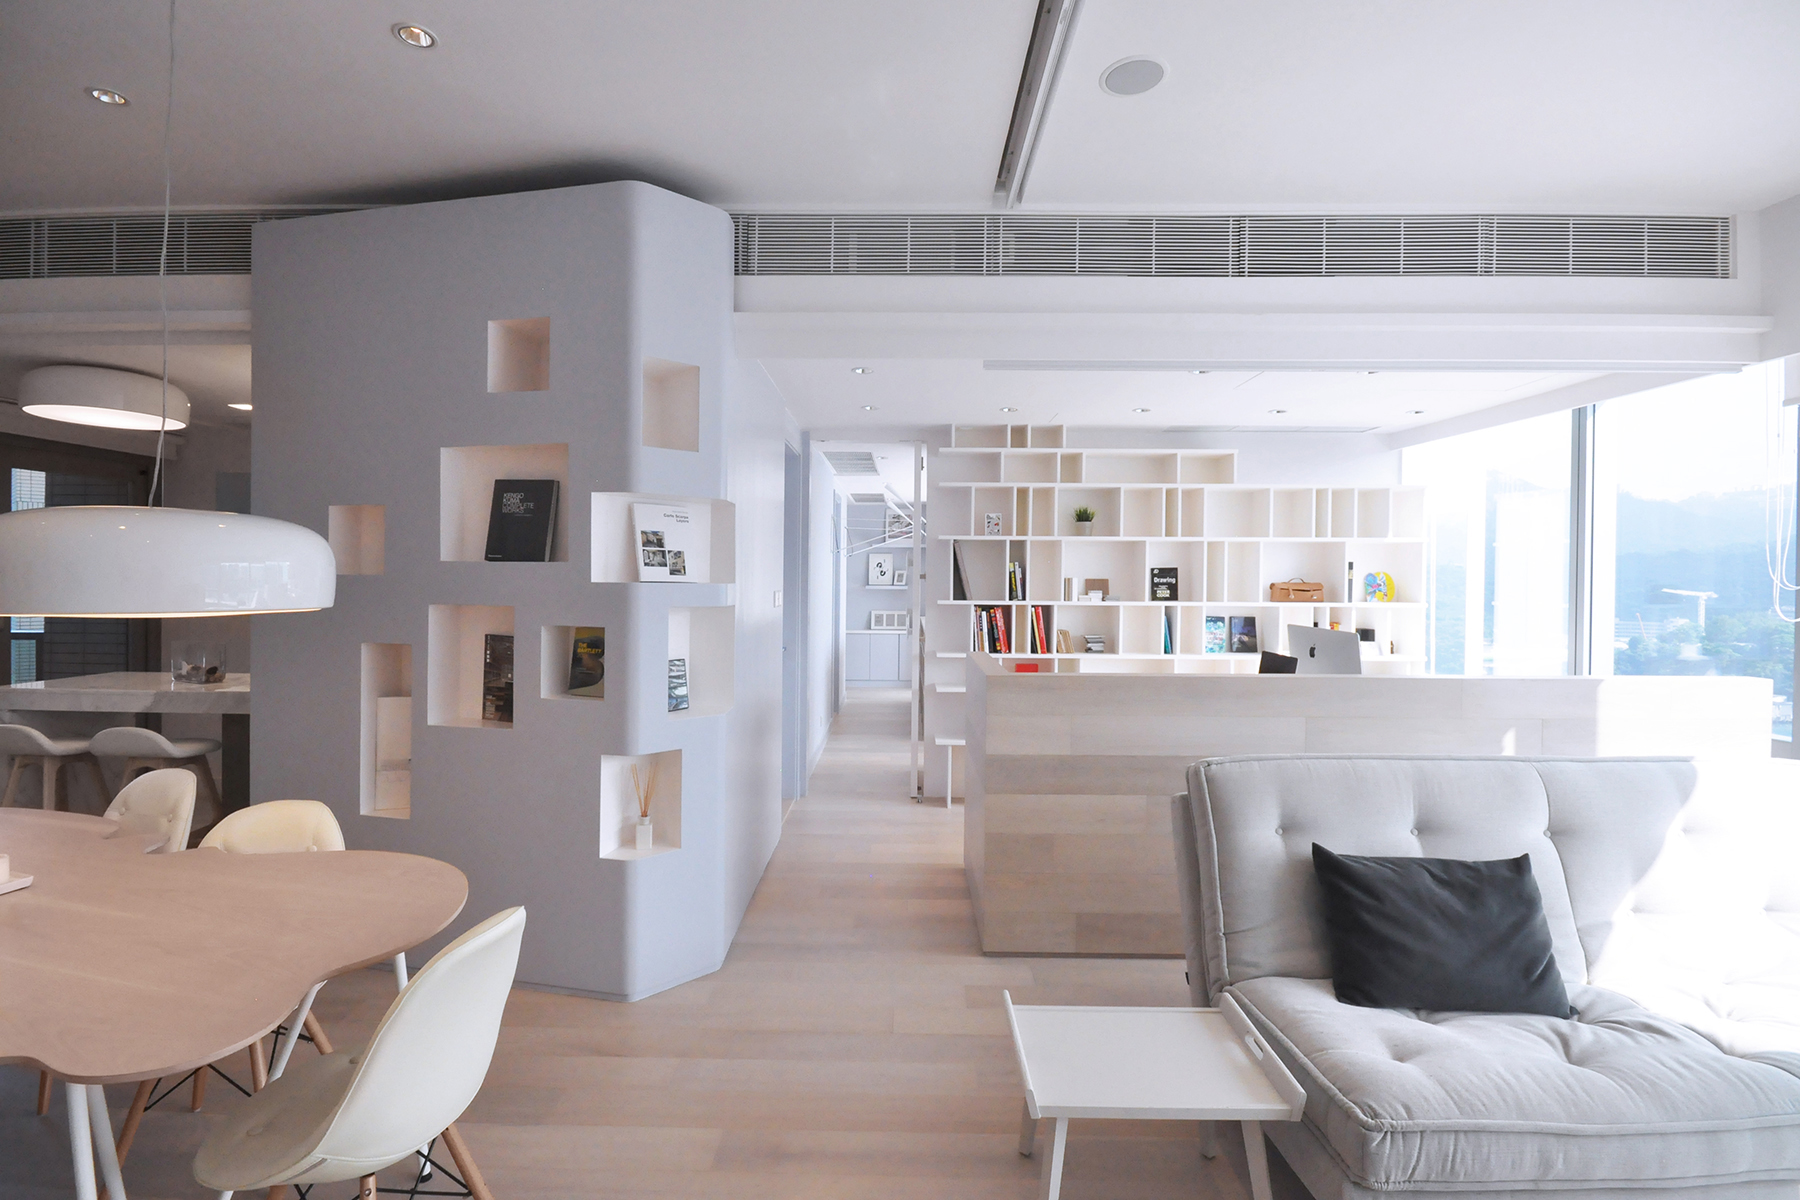 The material palette is calm and refreshing, with a tranquil sea-blue colour chosen for the continuous blue 'ribbon' wall that floats and connects through all the different areas, and acts as the main spatial element for storing and displaying personal items